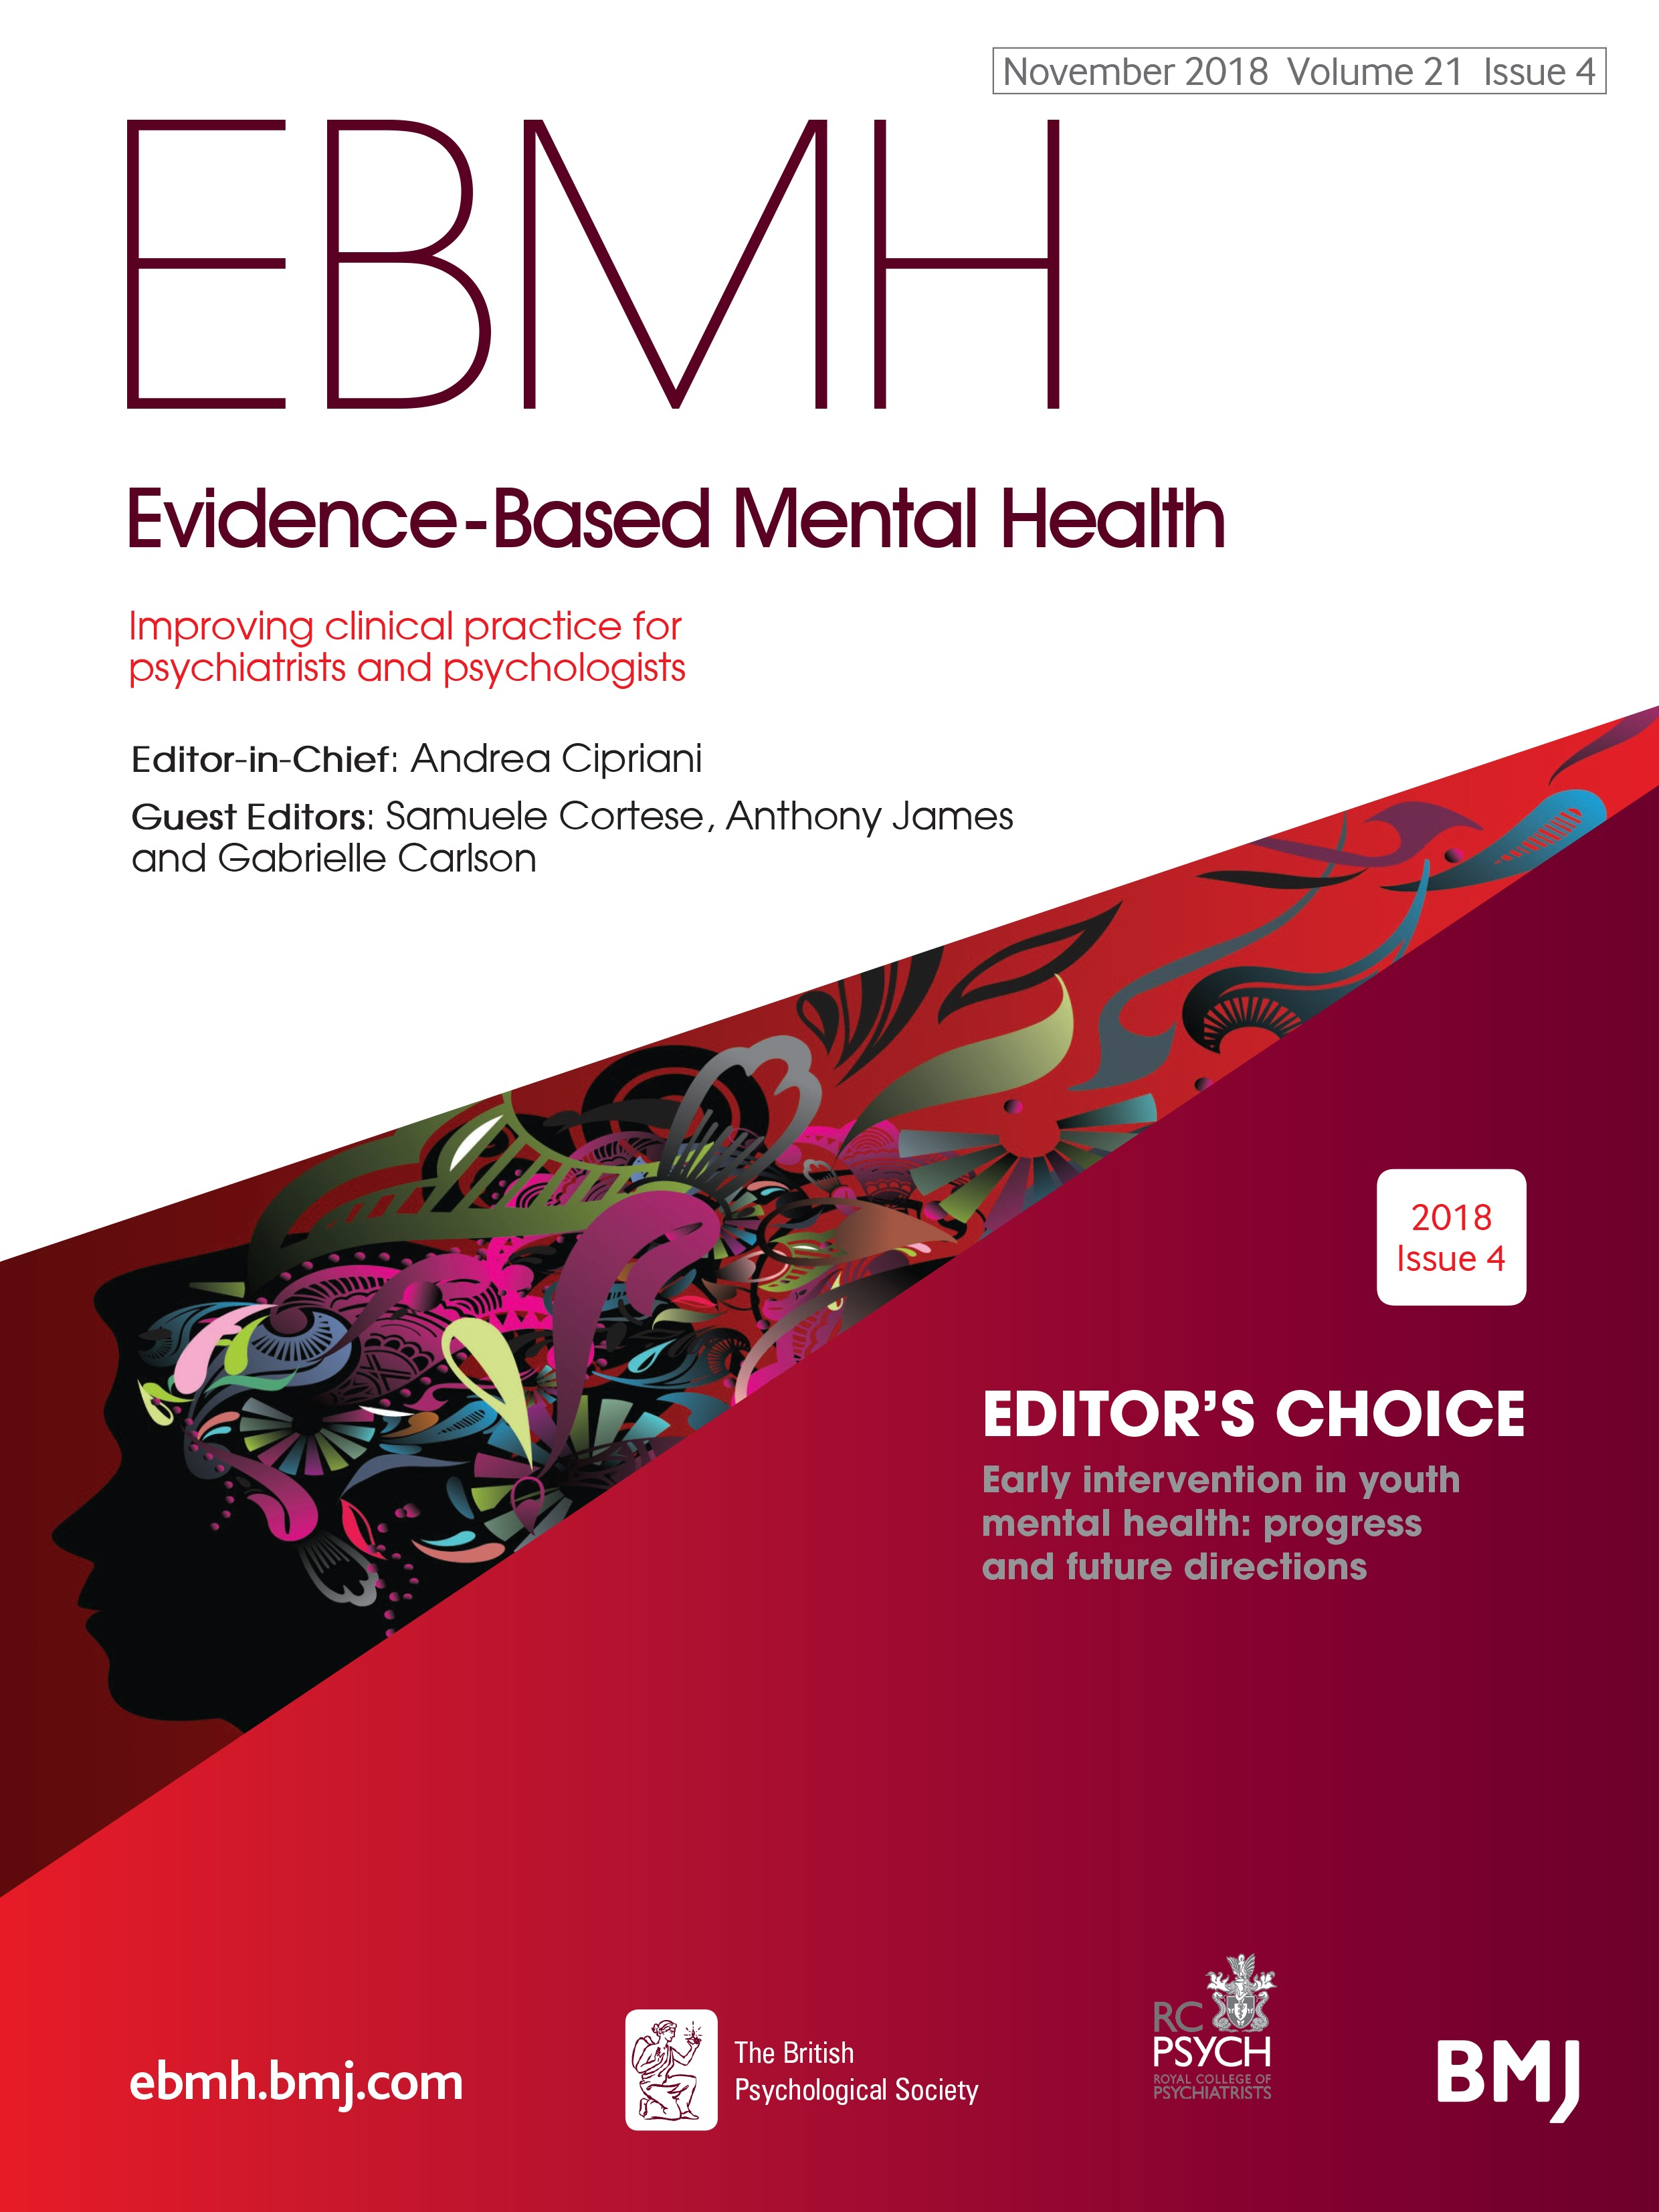 3adf1f0cc95 Need for evidence-based early intervention programmes: a public health  perspective | Evidence-Based Mental Health